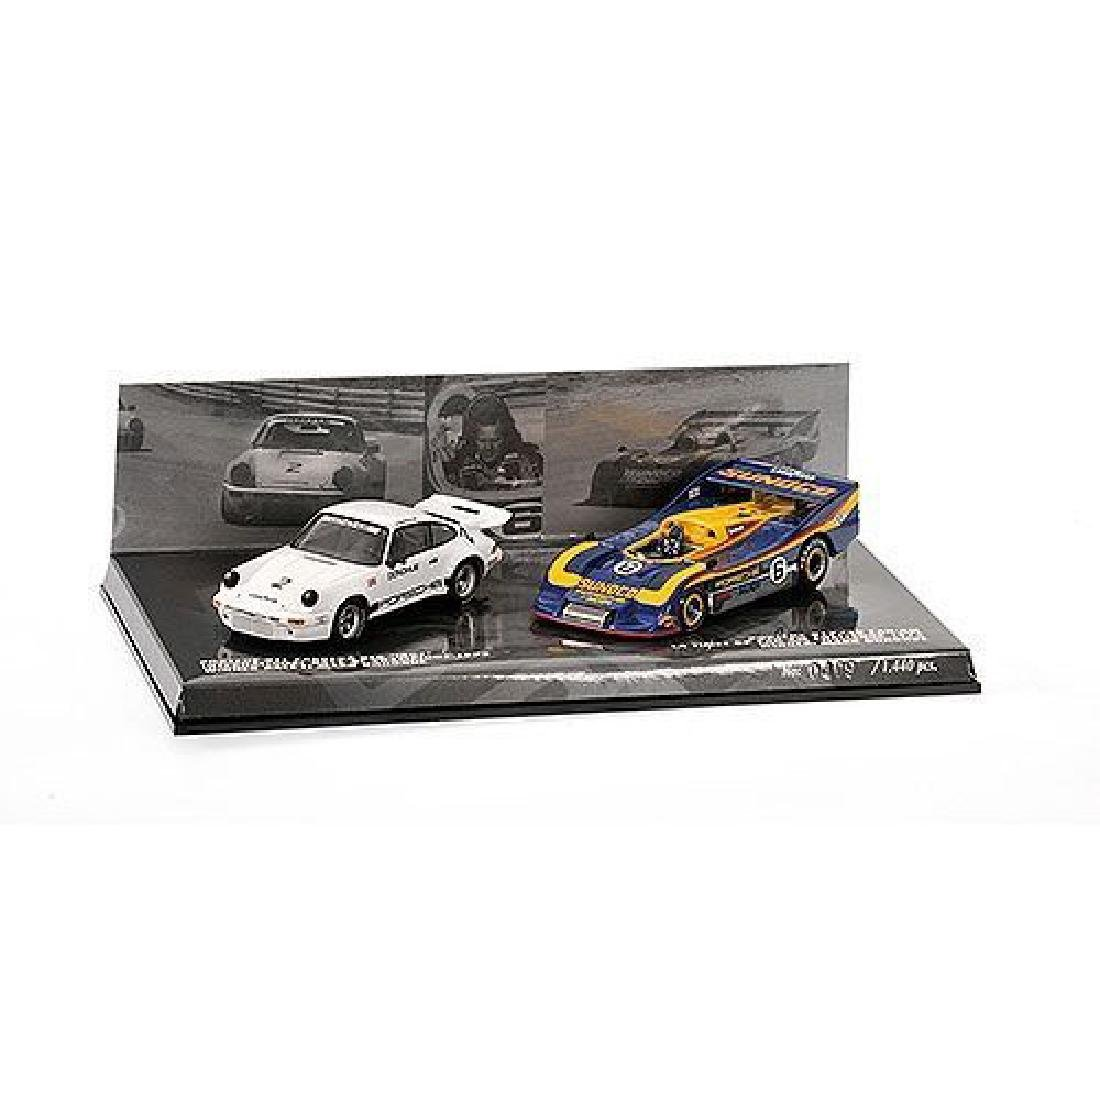 Minichamps Scale 1:43 Porsche 911 917 Mark Donohue 1973 - 3